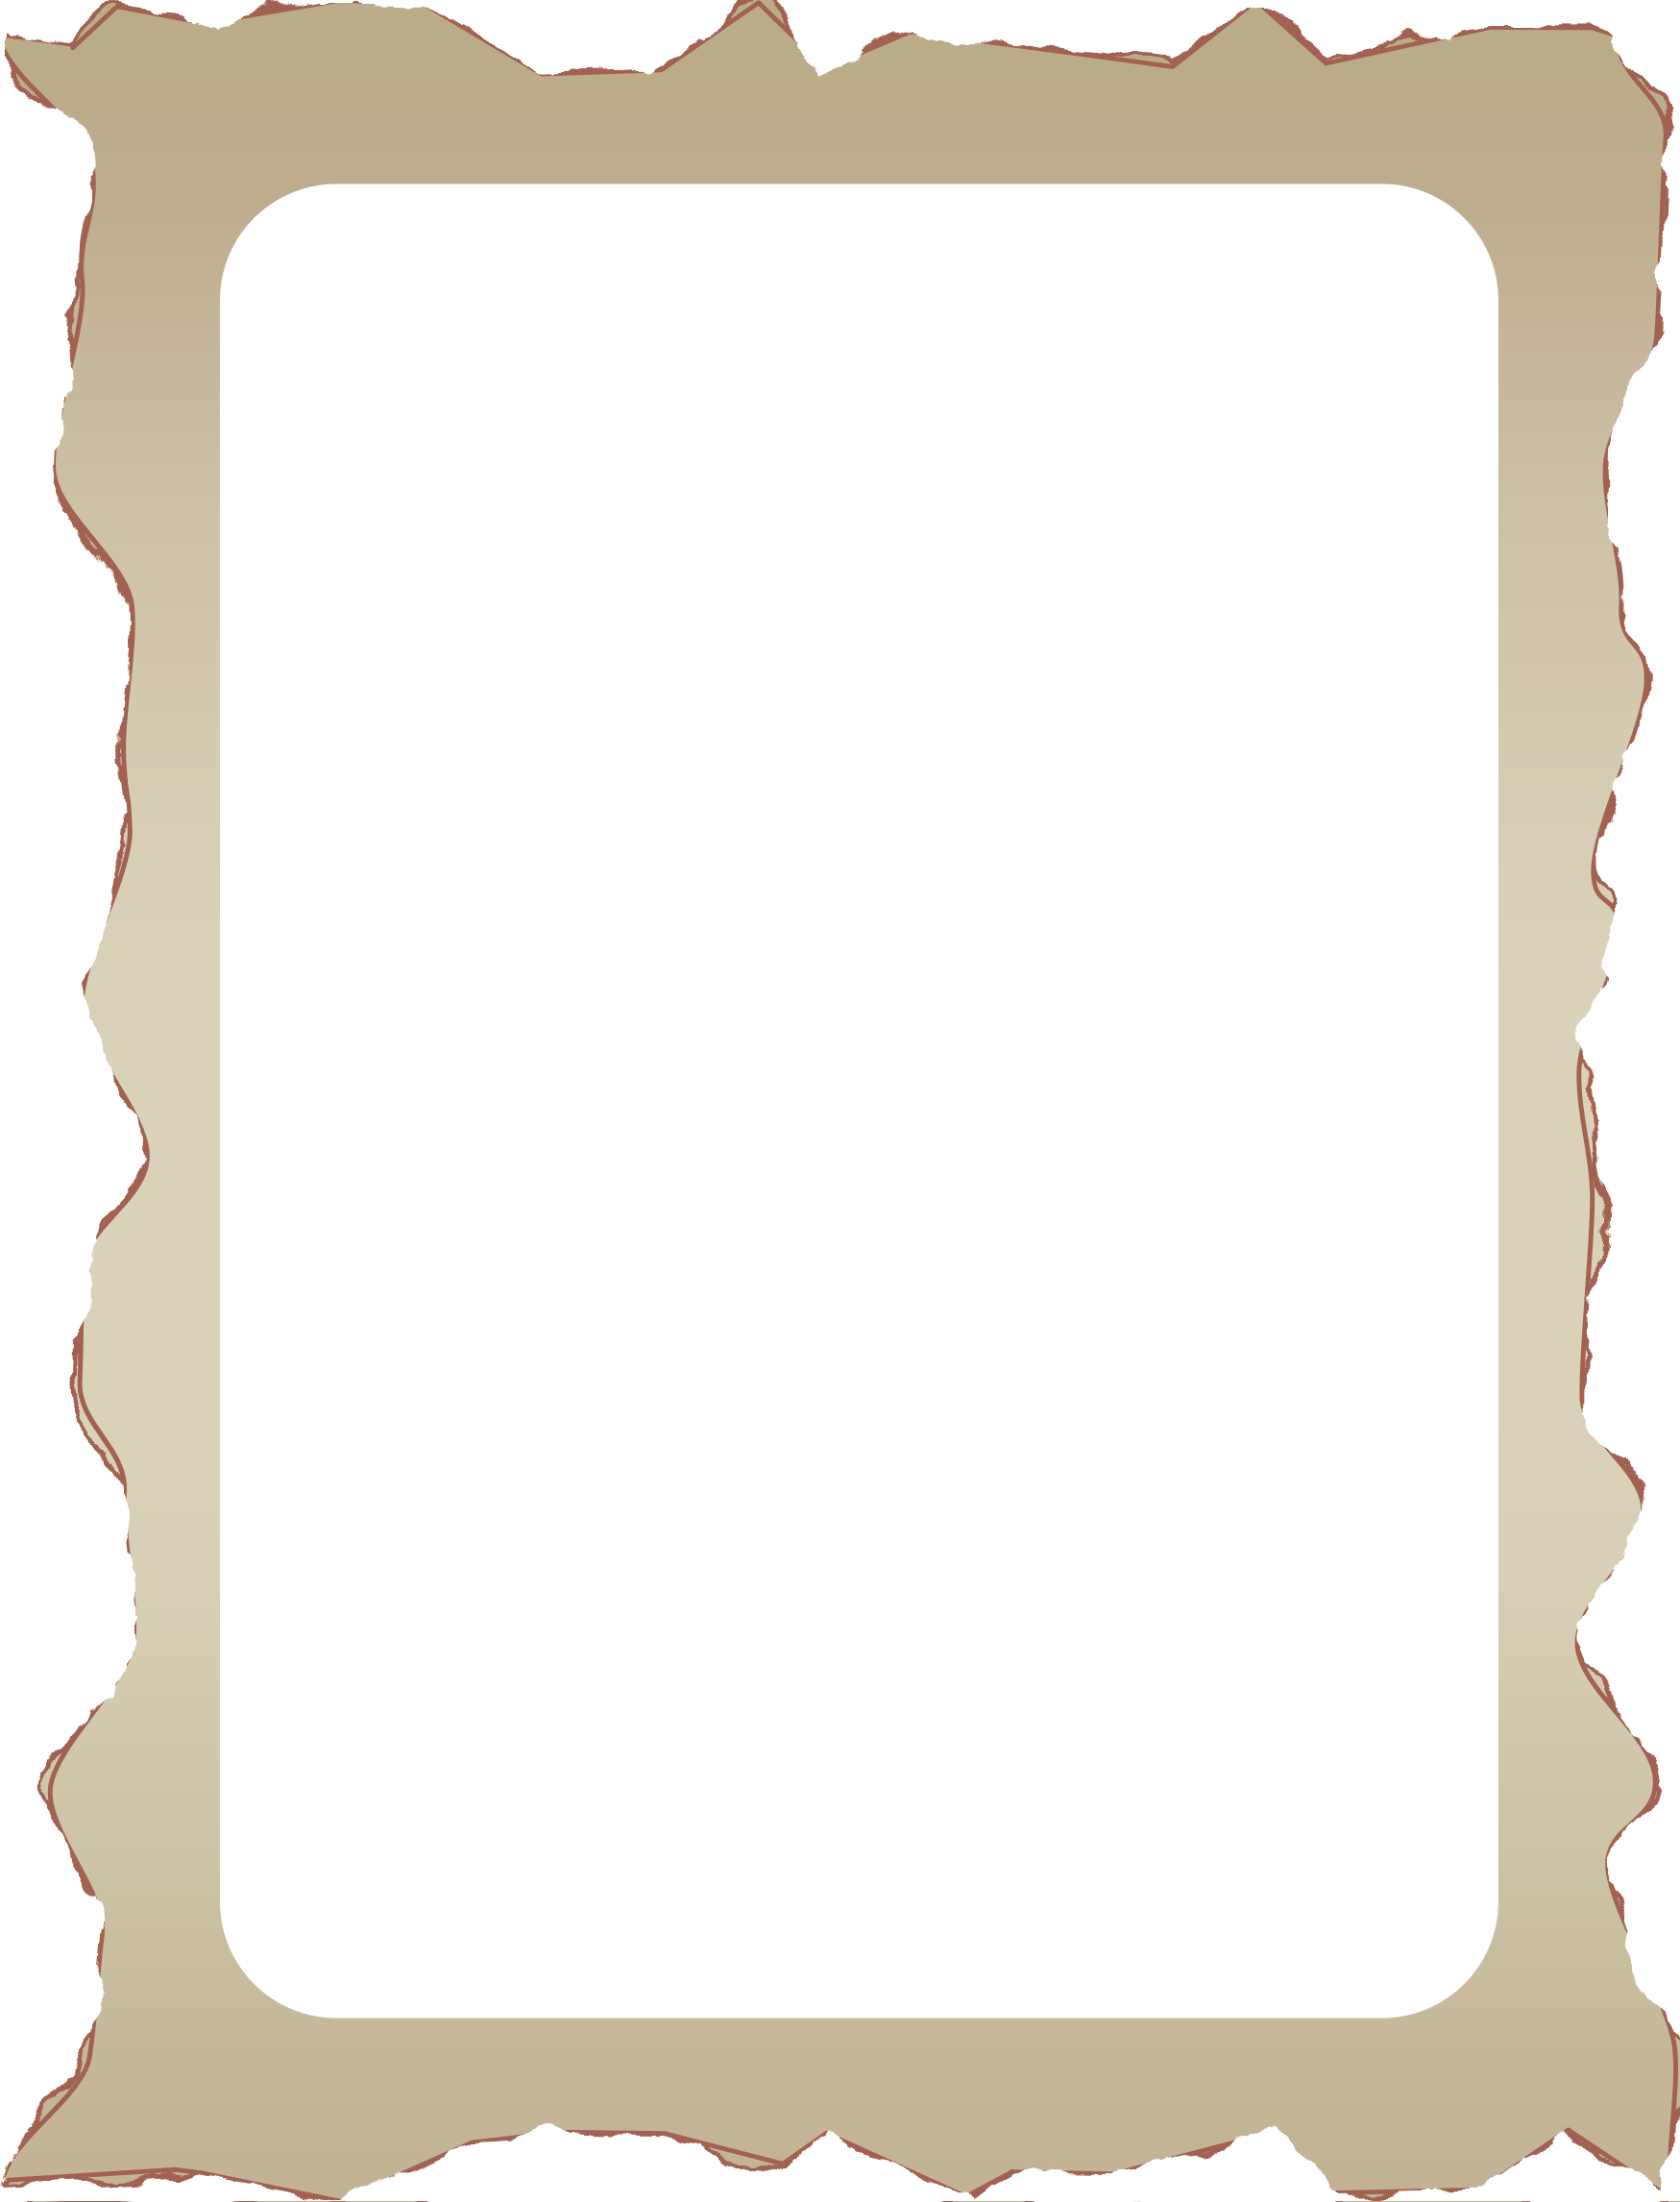 Old photo border png. Parchment icons free and